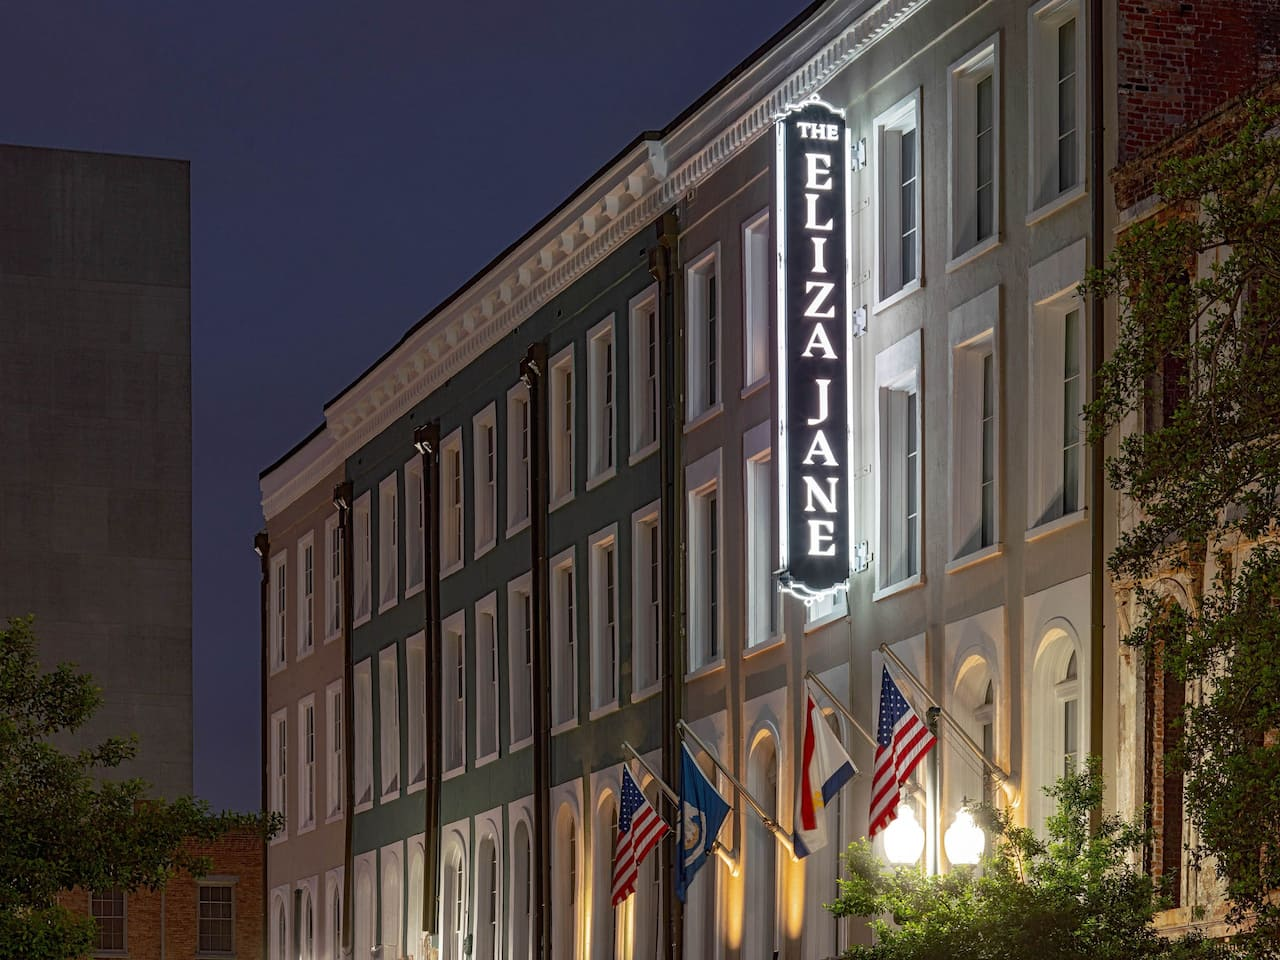 Exterior Signage at The Eliza Jane New Orleans